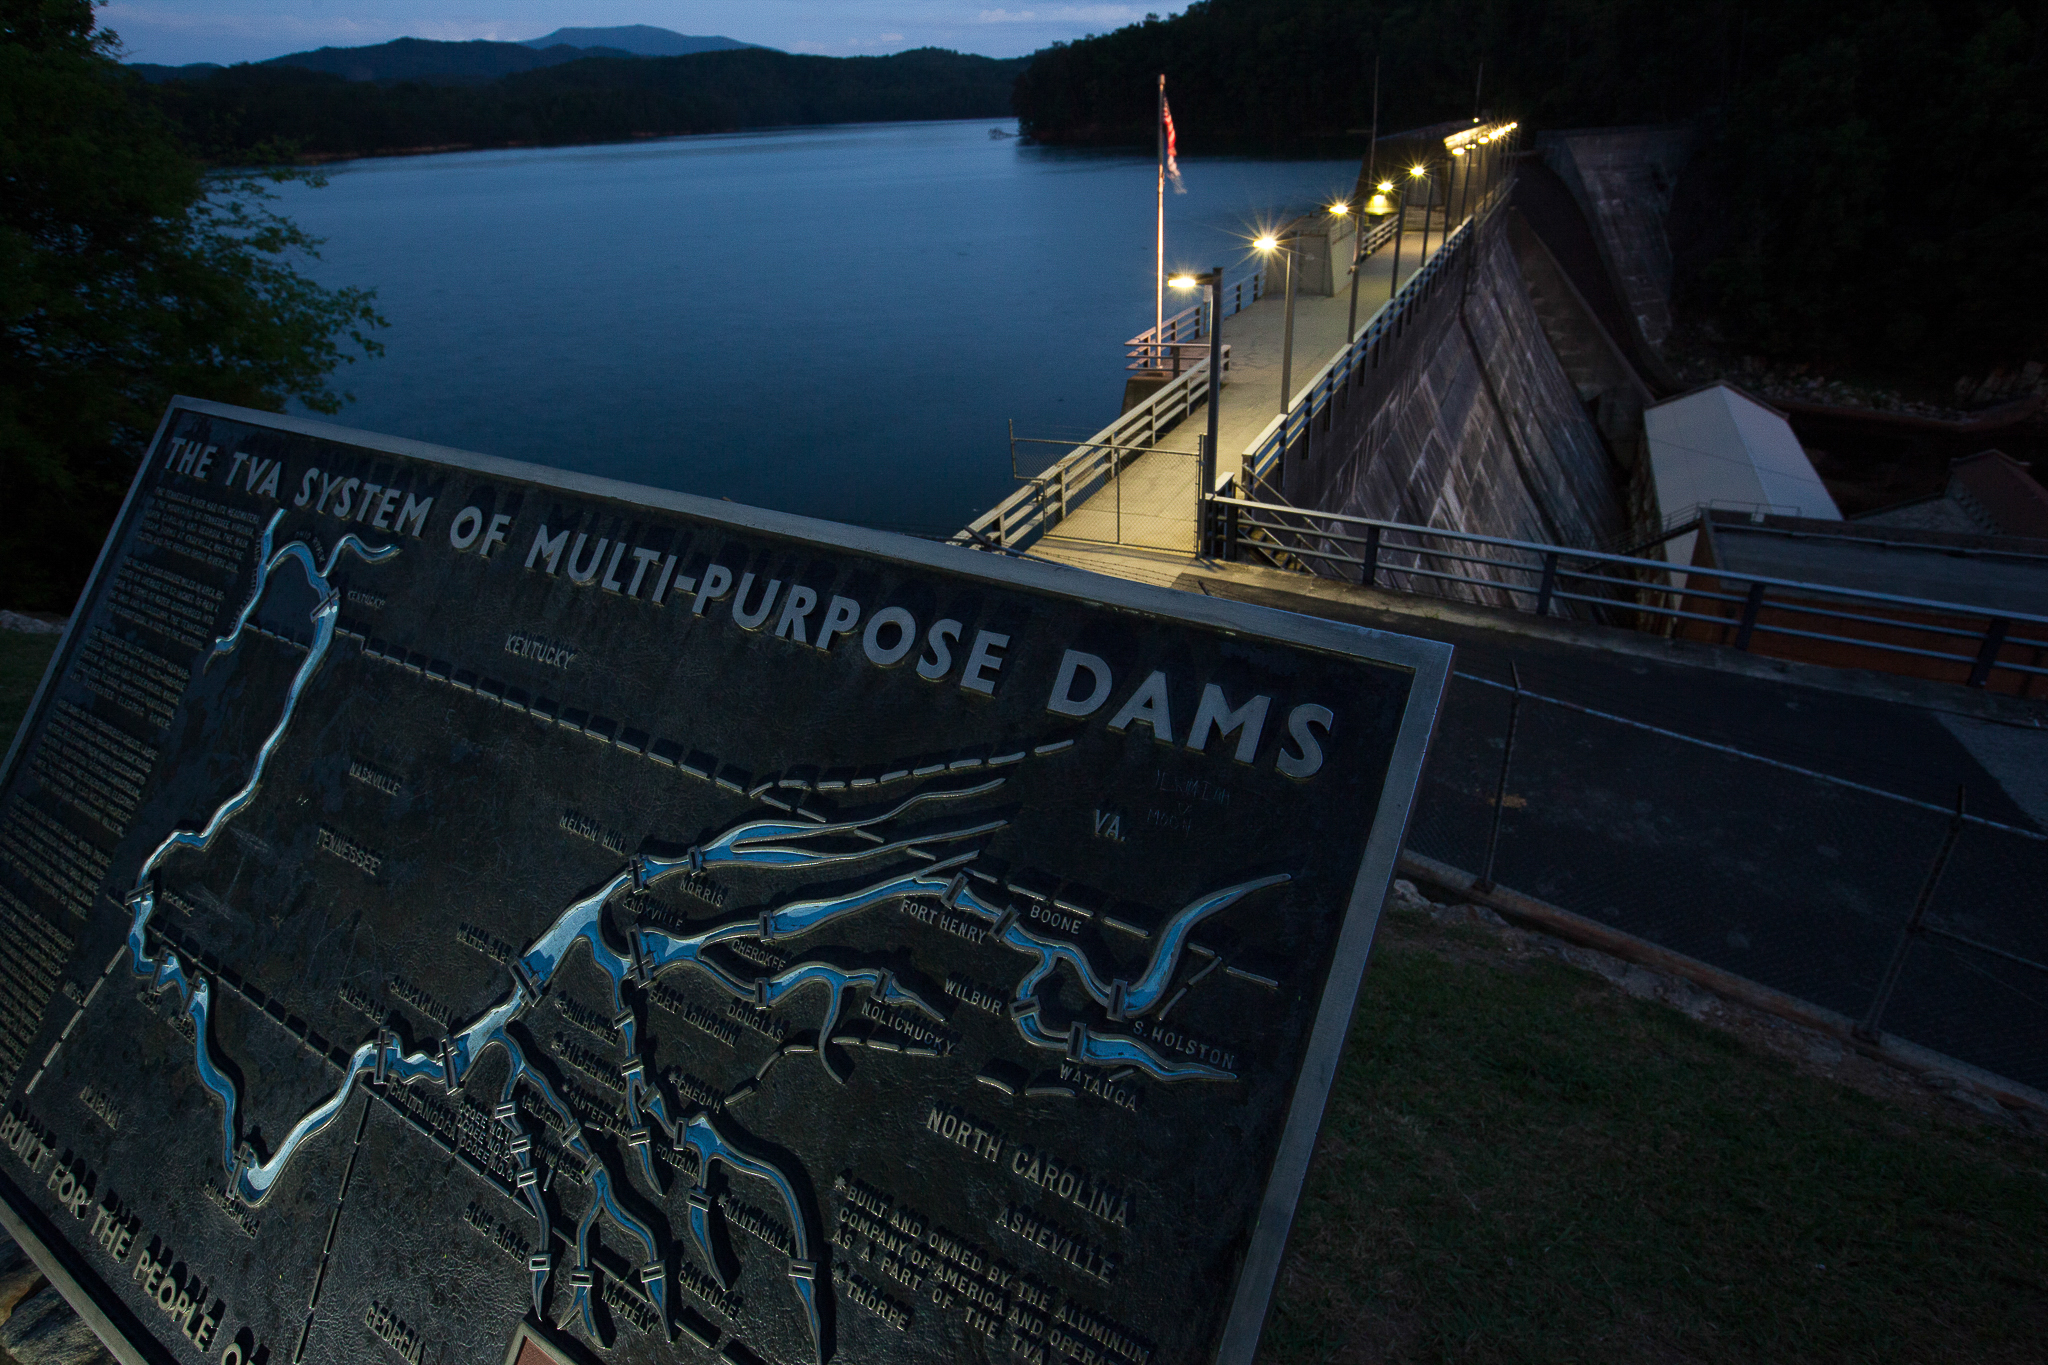 A network of large dams on the Little Tennessee River has resulted in the loss of miles of hellbender habitat, turning pristine river beds into reservoirs.